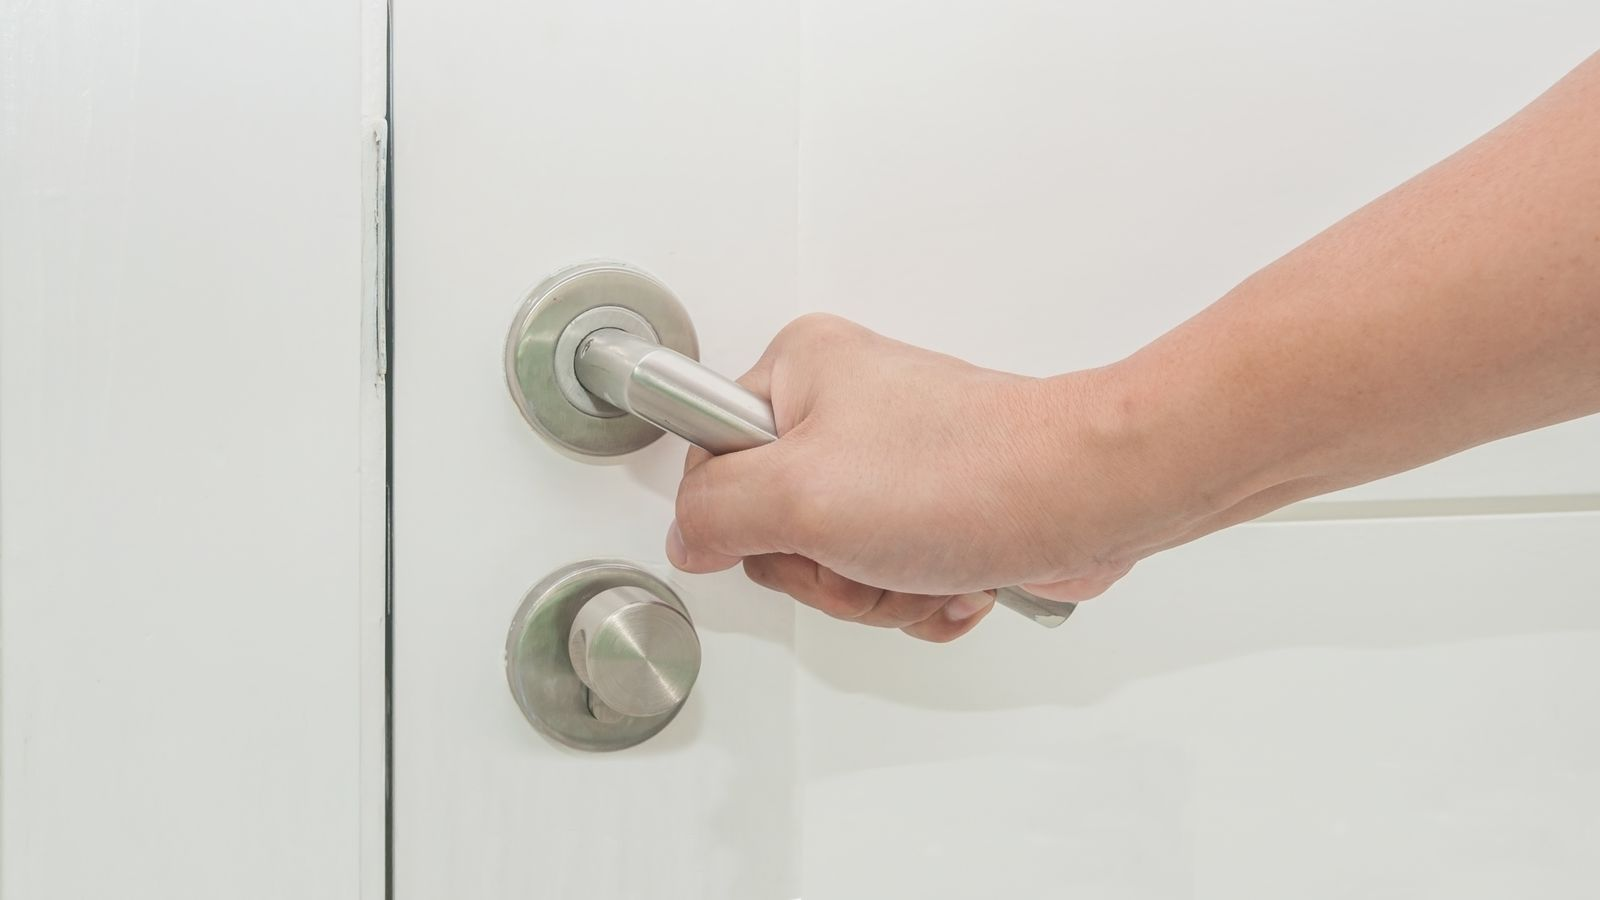 Close-Up Of Hand Holding Doorknob